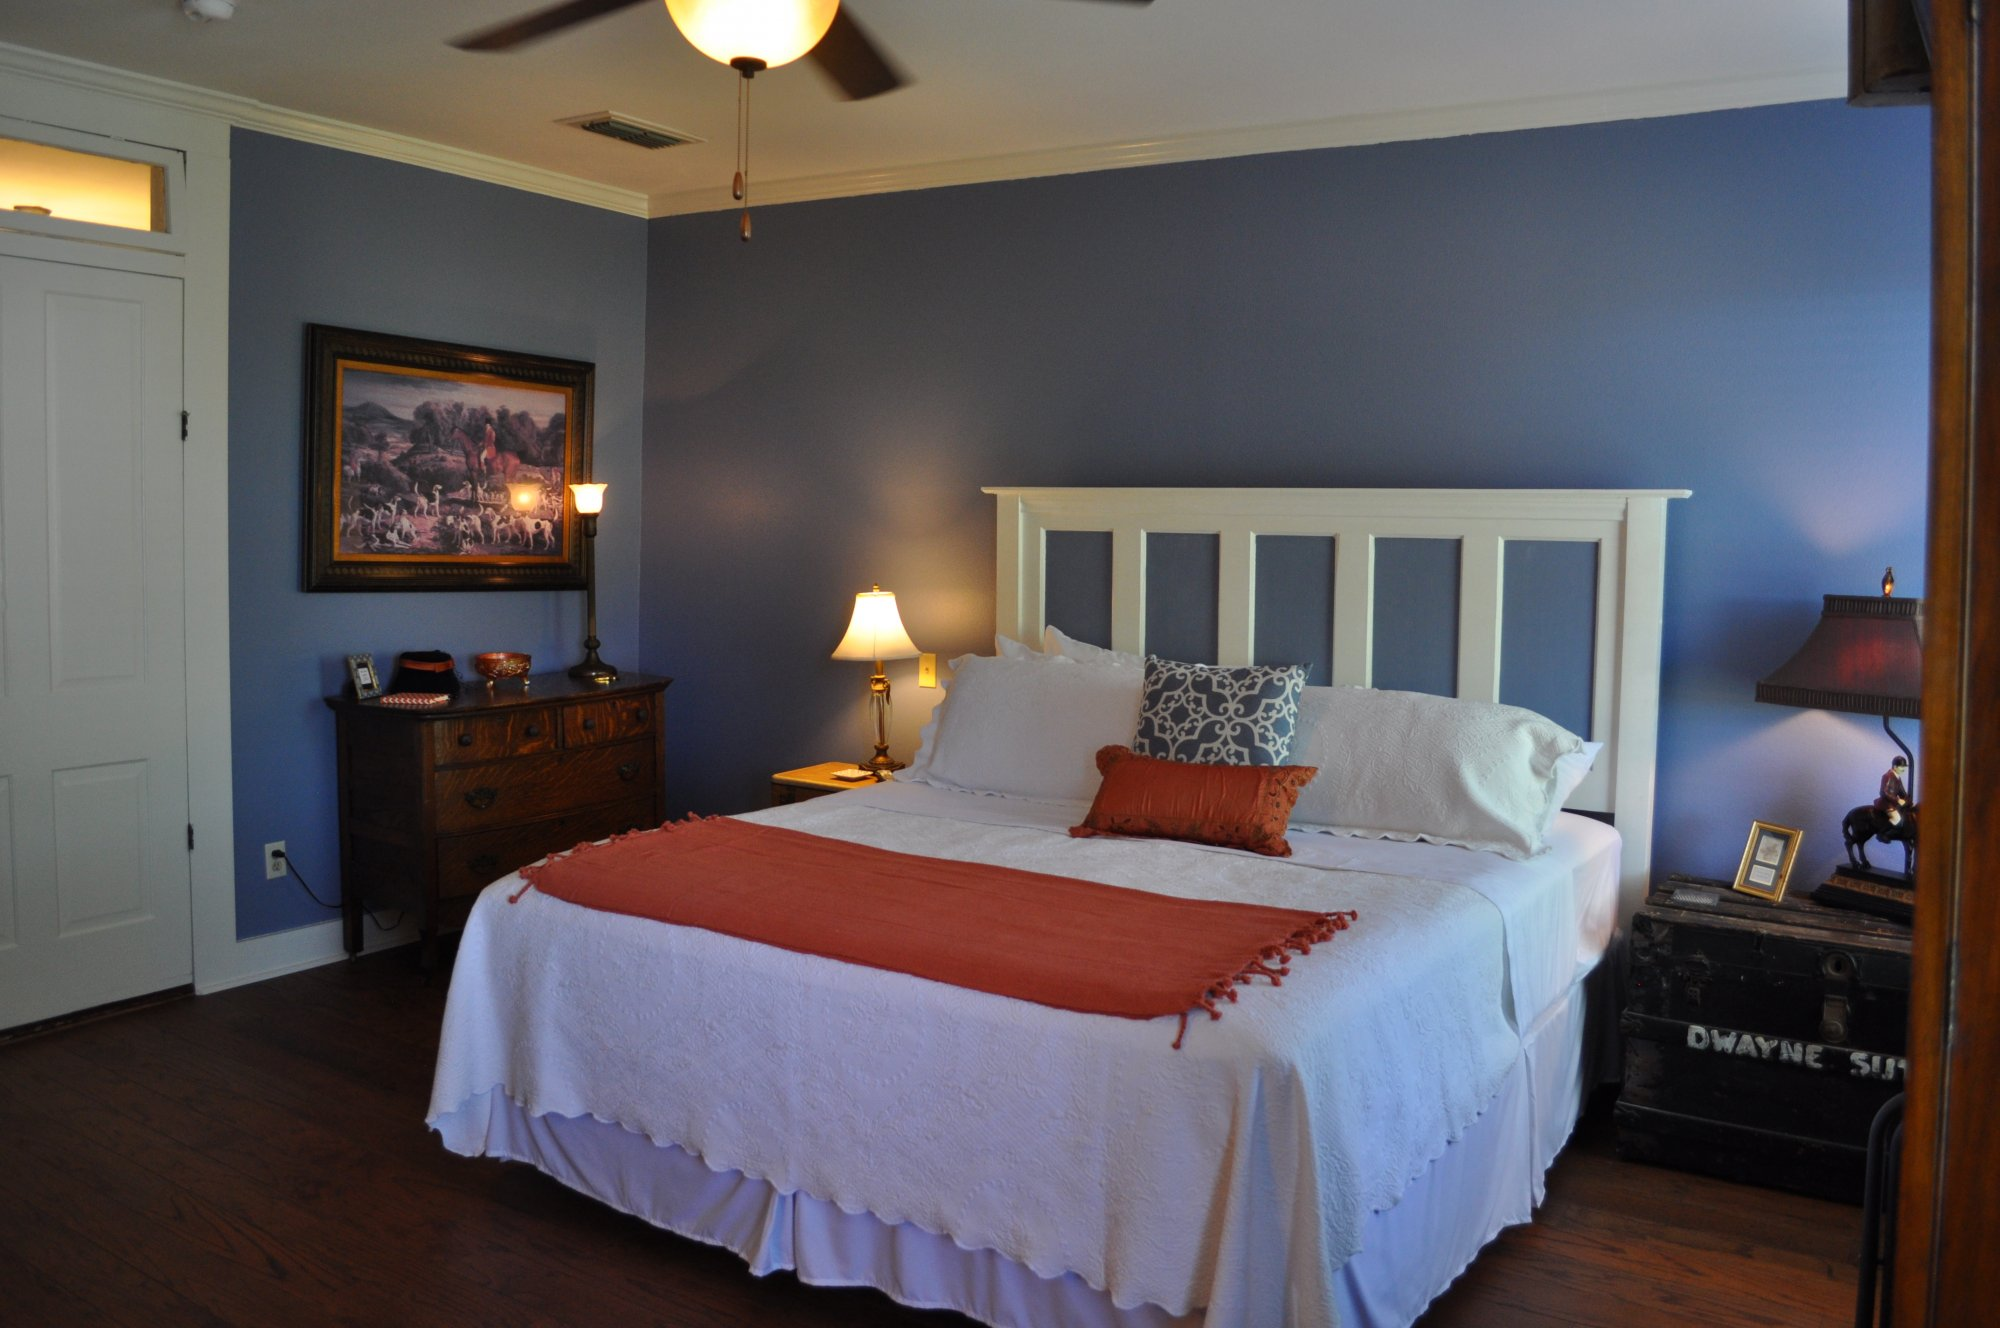 This Spacious Room On The East Side Of The Home Upstairs Overlooks The  Backyard, Is Draped In Blue And Named After Mrs. Kennedyu0027s Grandson. The  Room ...